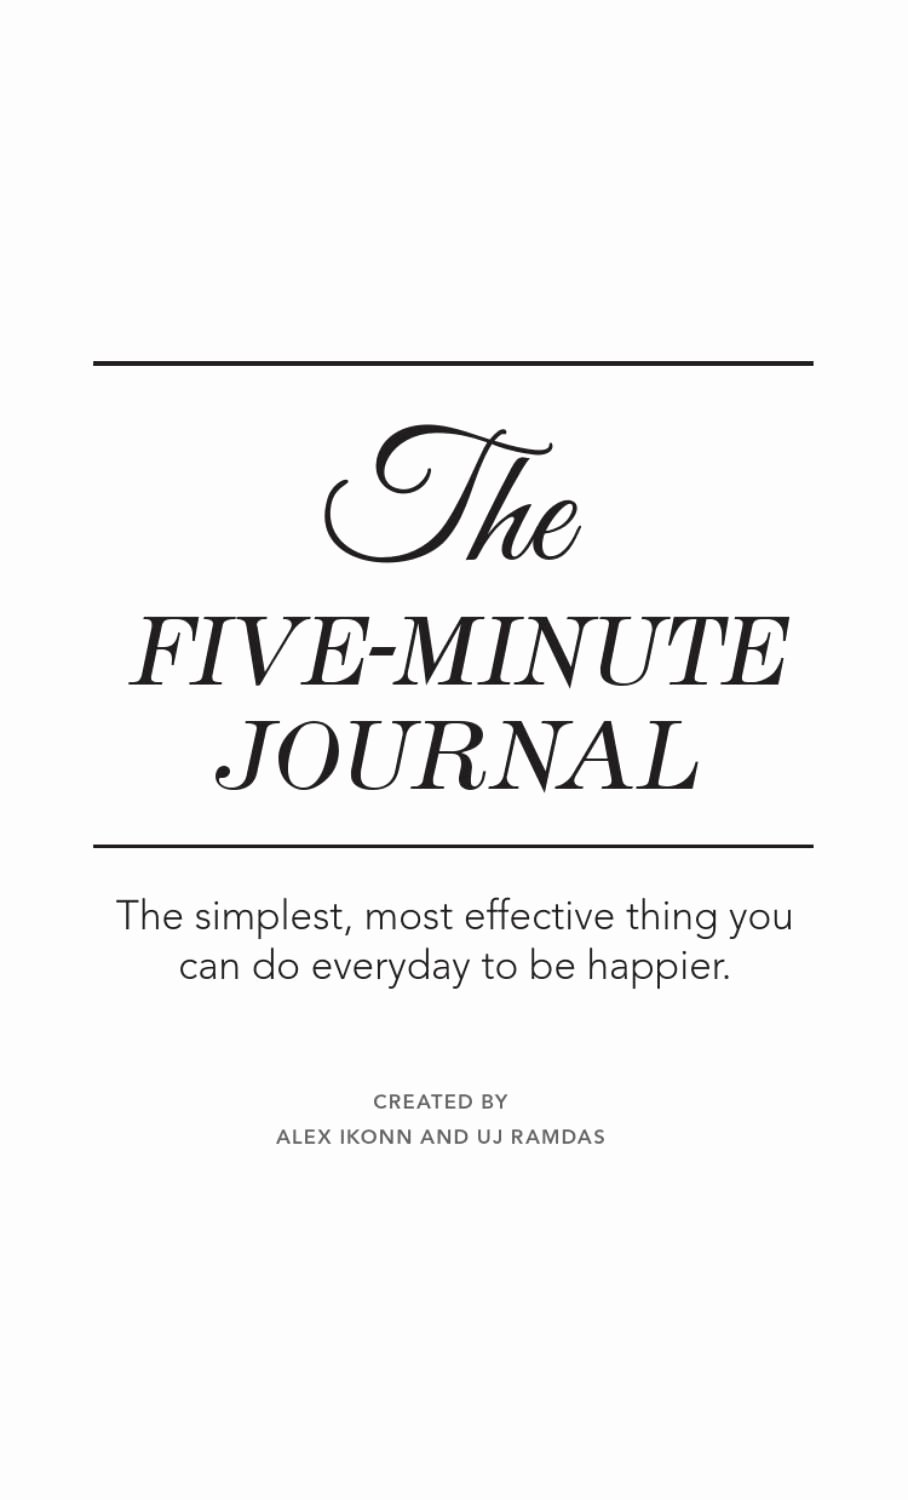 5 Minute Journal Pdf Luxury Five Minute Journal Notes